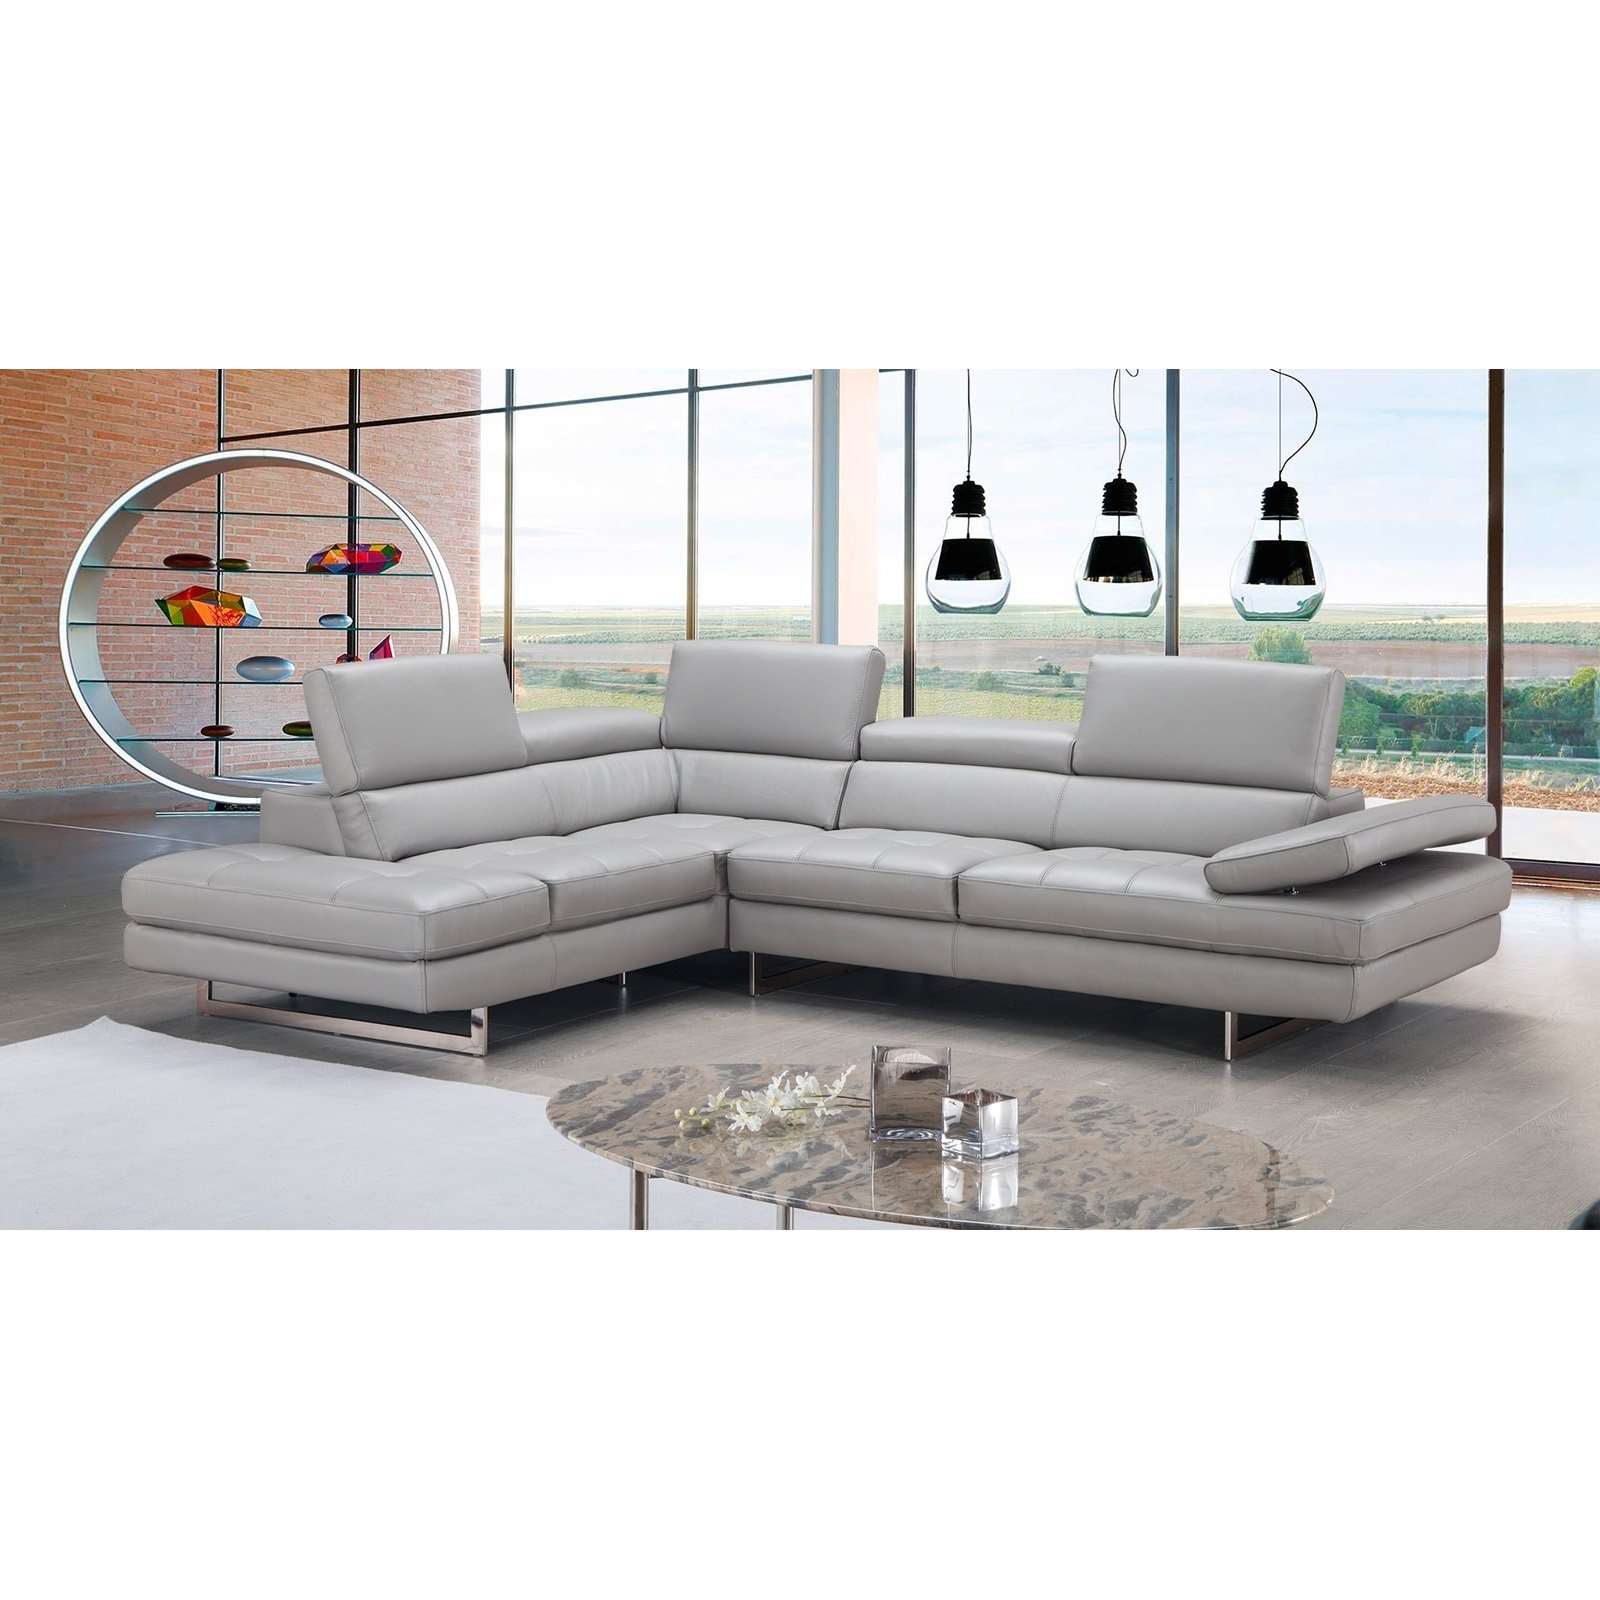 J&m Furniture Aurora Chaise Sectional Sofa | Hayneedle with Aurora 2 Piece Sectionals (Image 19 of 30)